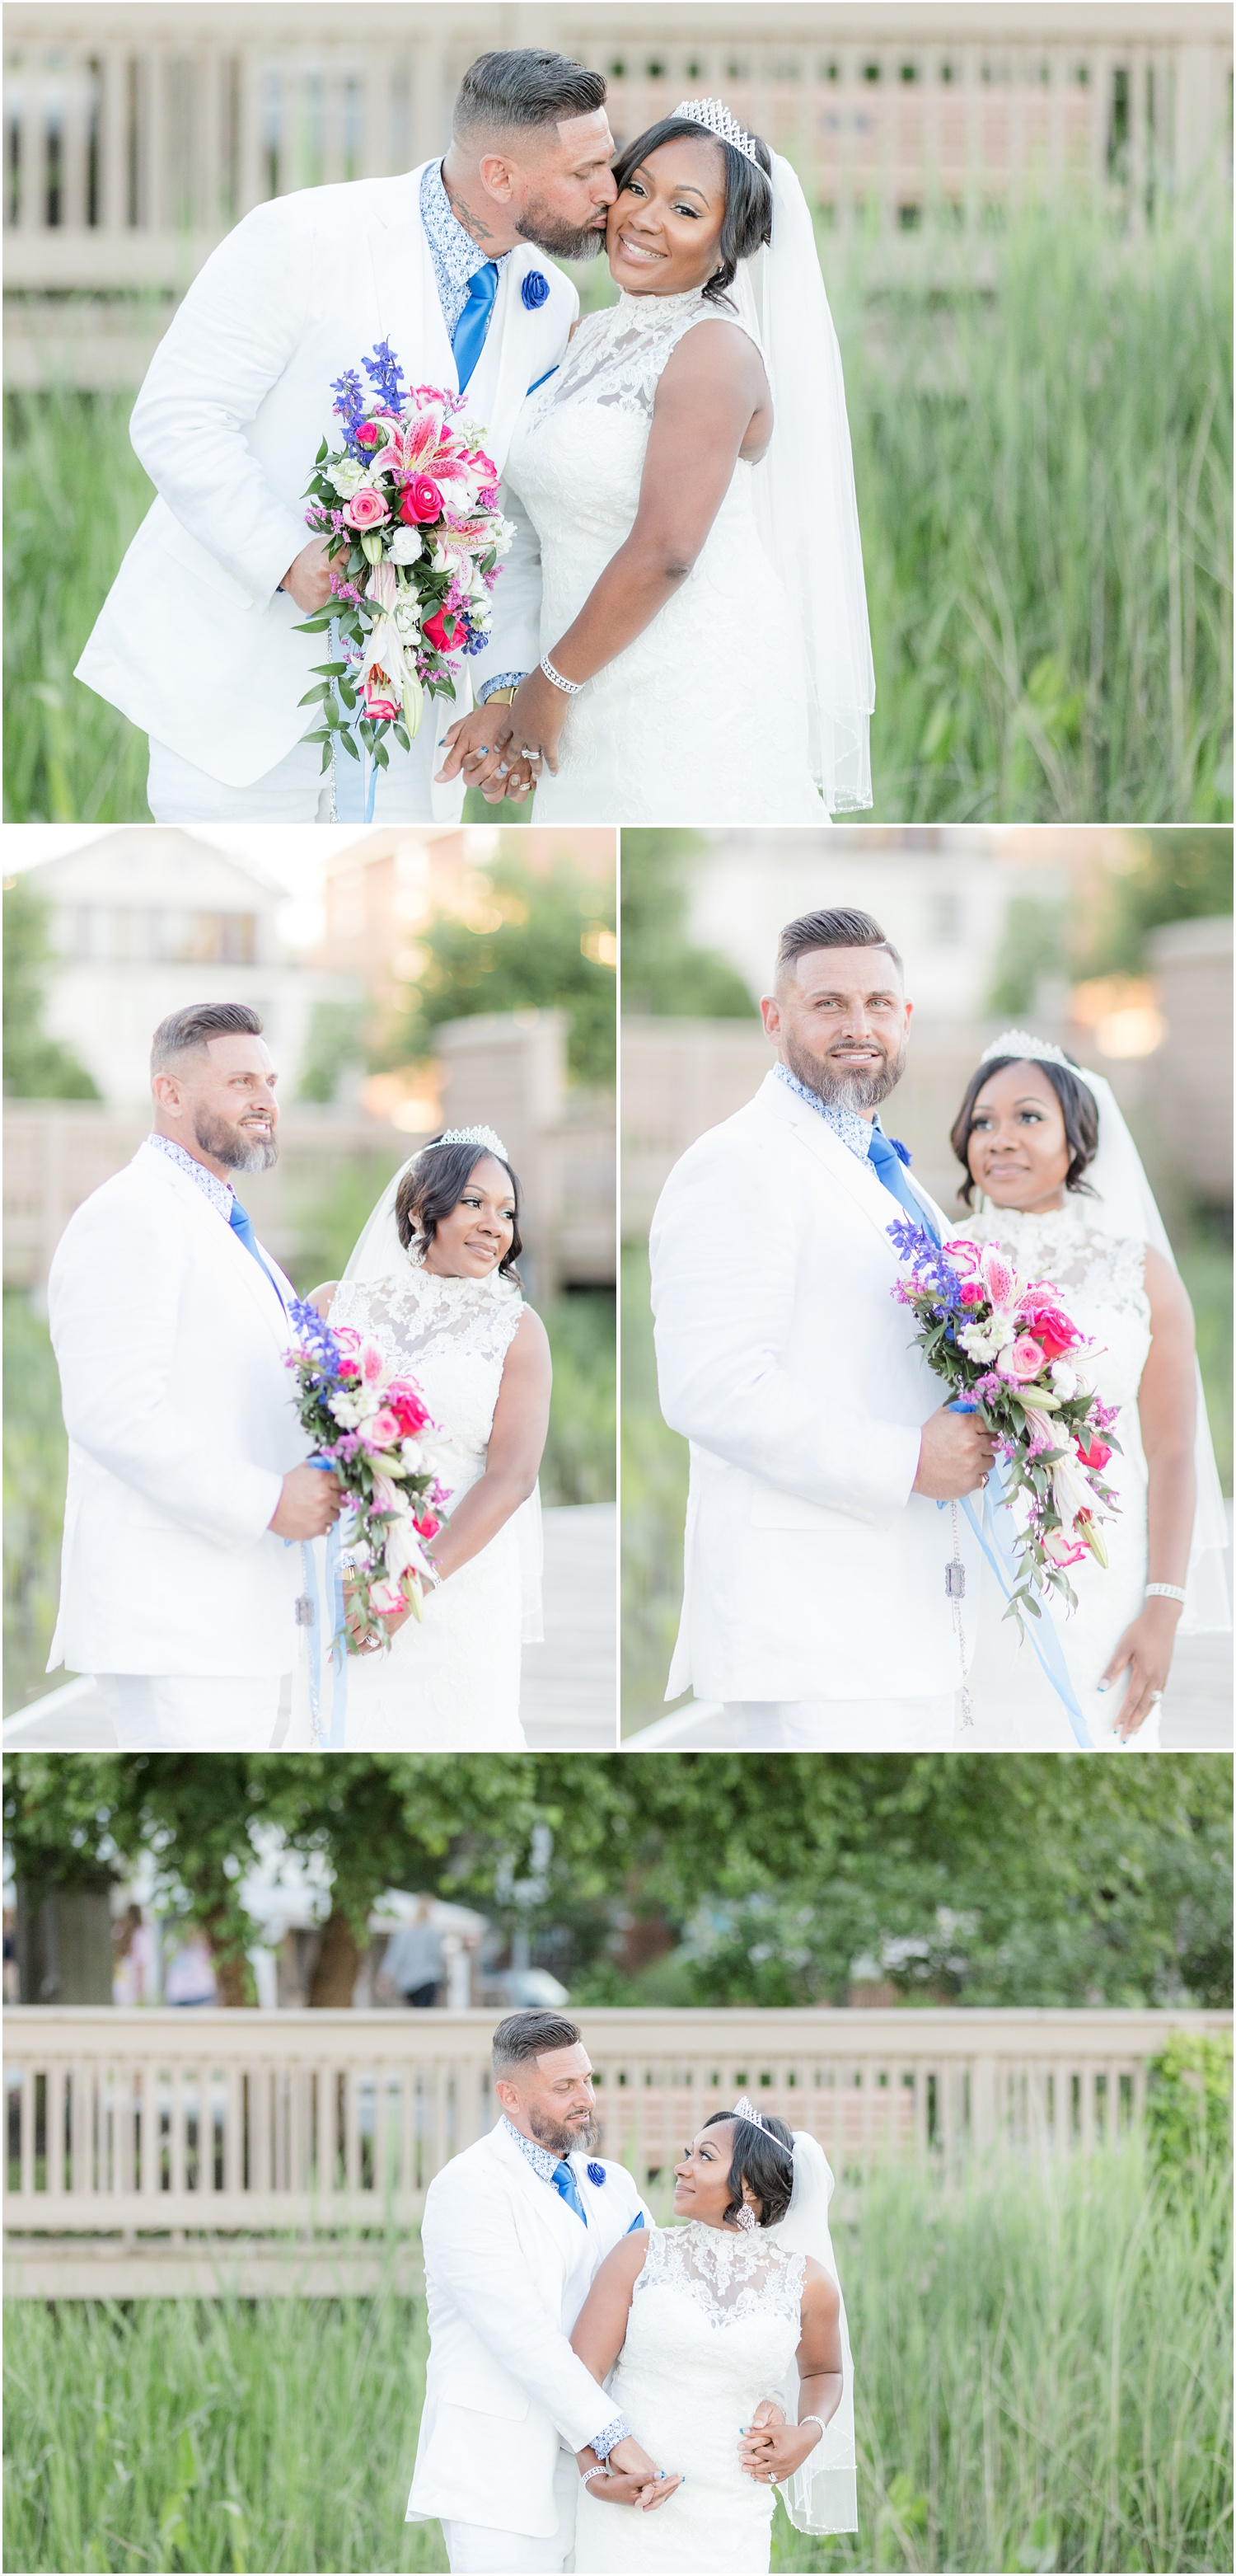 colorful Bride and groom photos in Chesapeake City, MD.